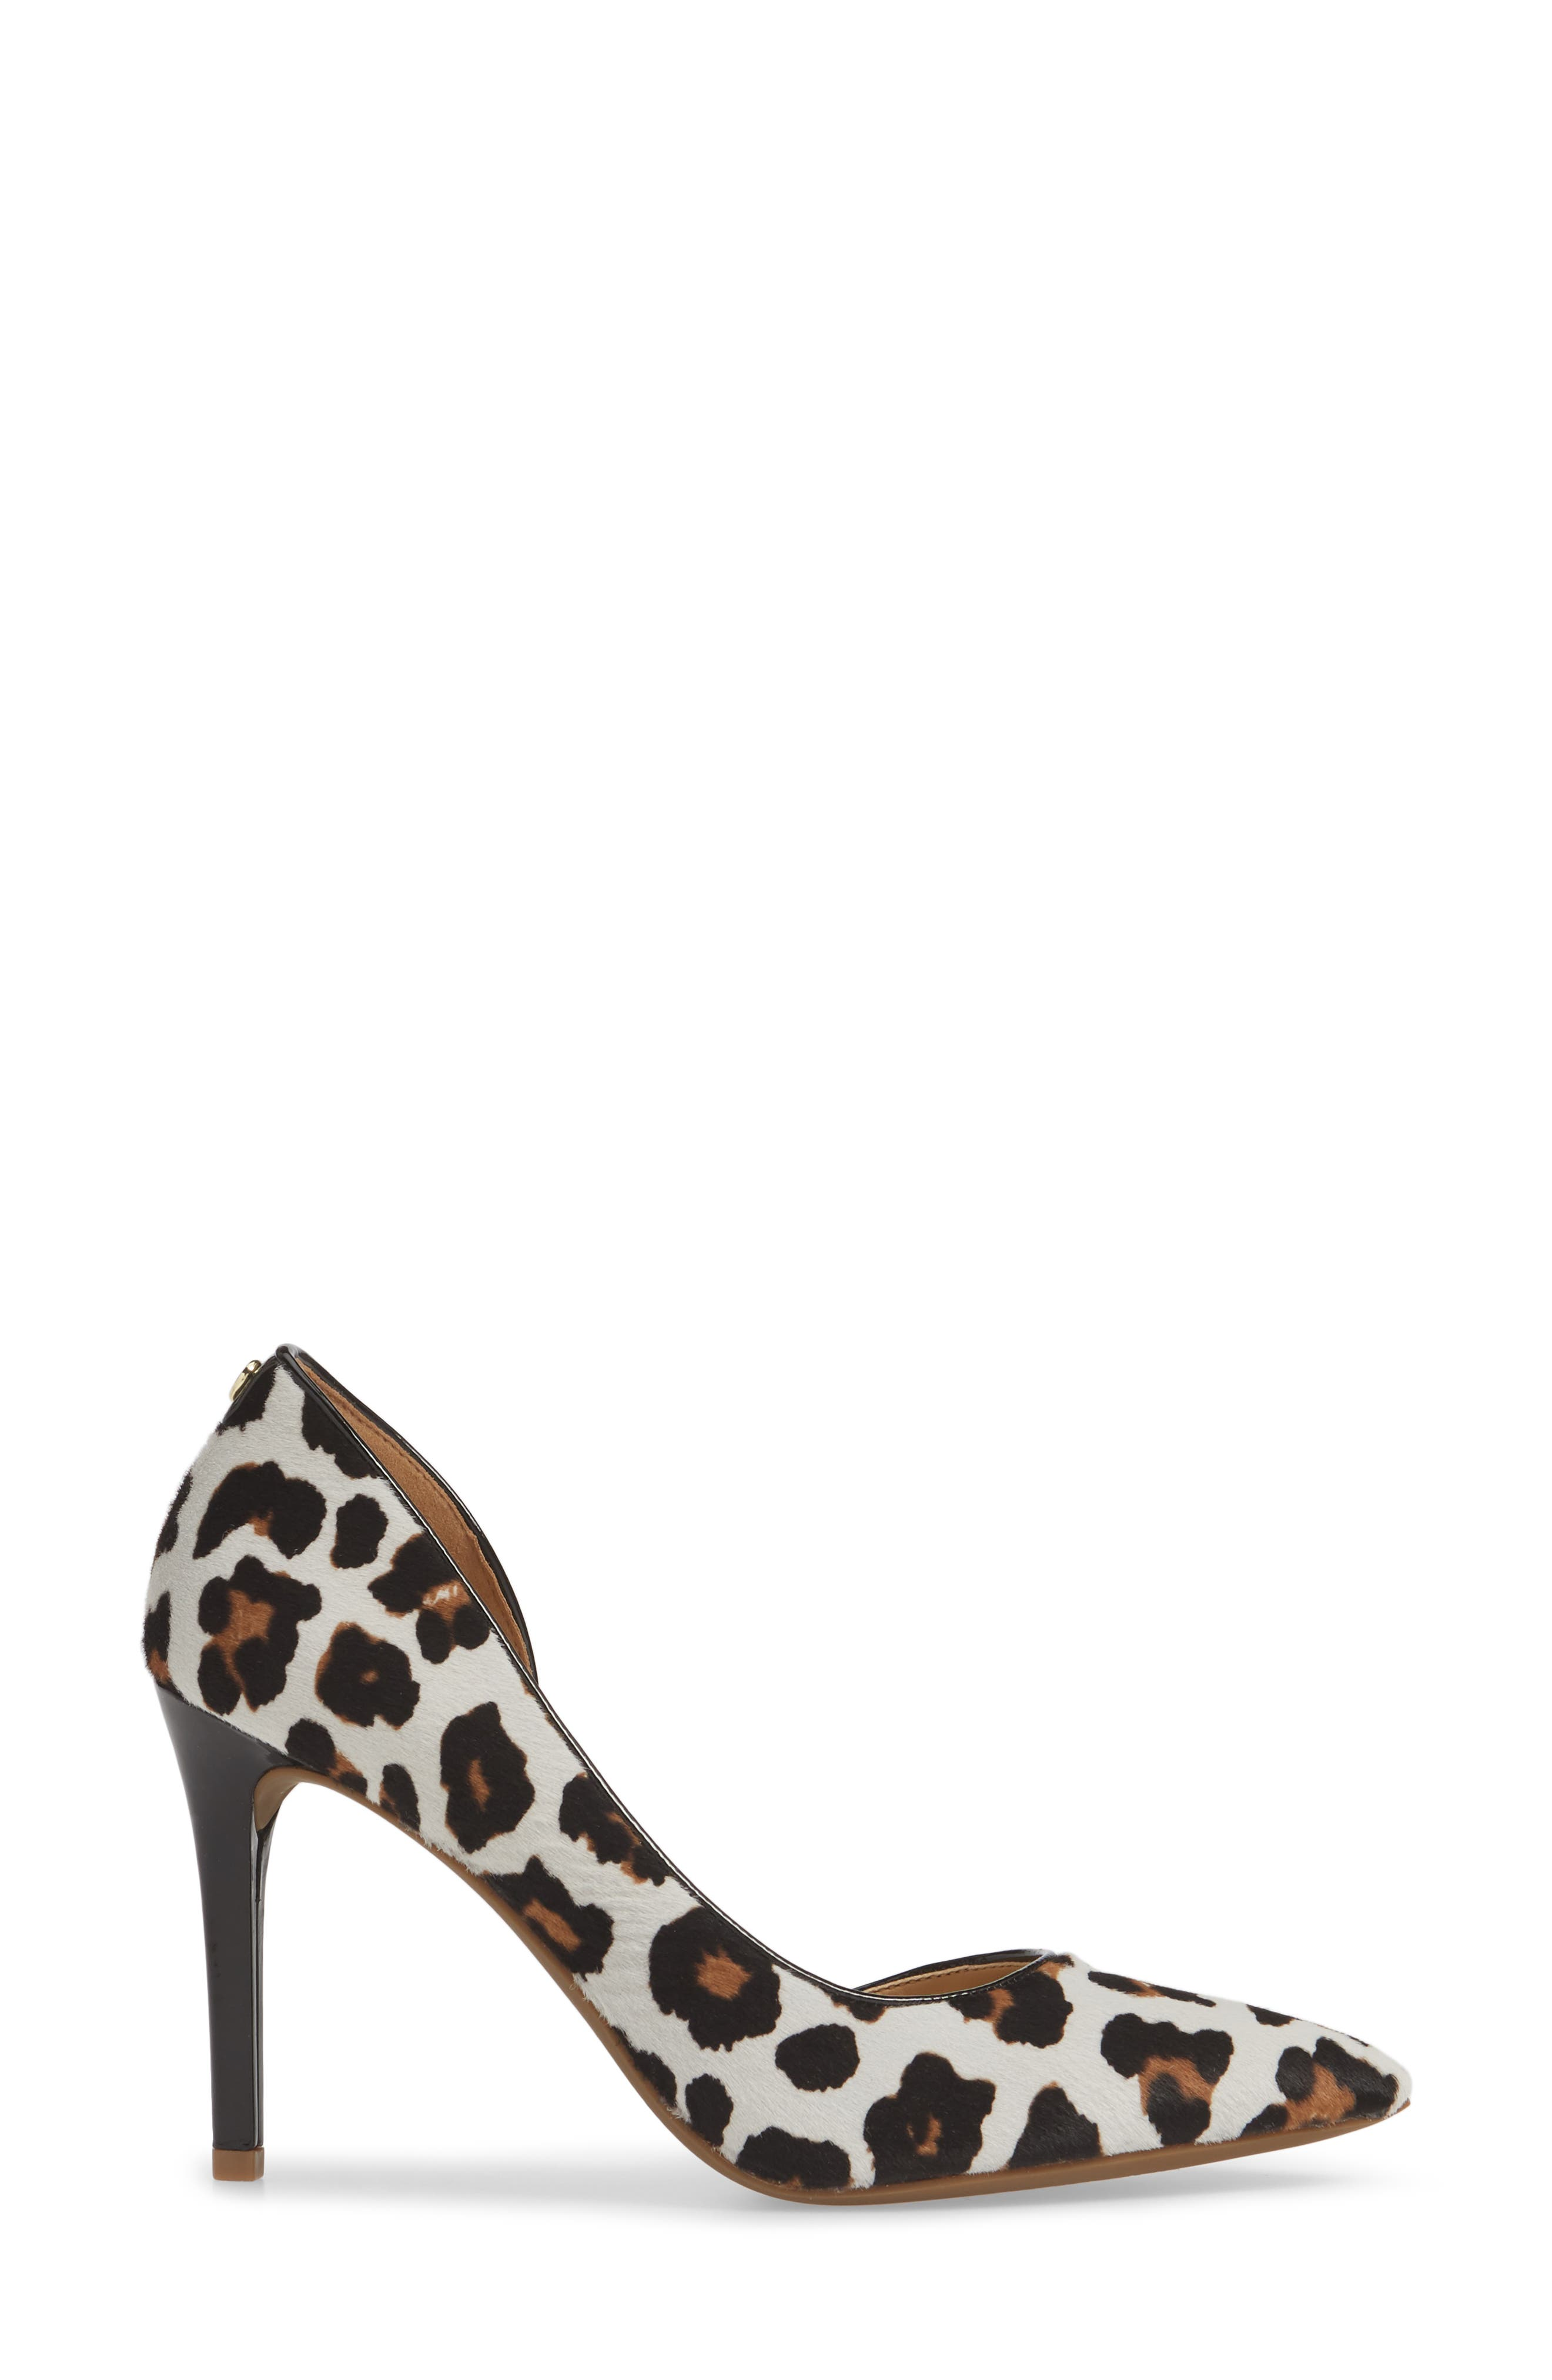 MICHAEL MICHAEL KORS, Lucile Flex Pump, Alternate thumbnail 3, color, 203